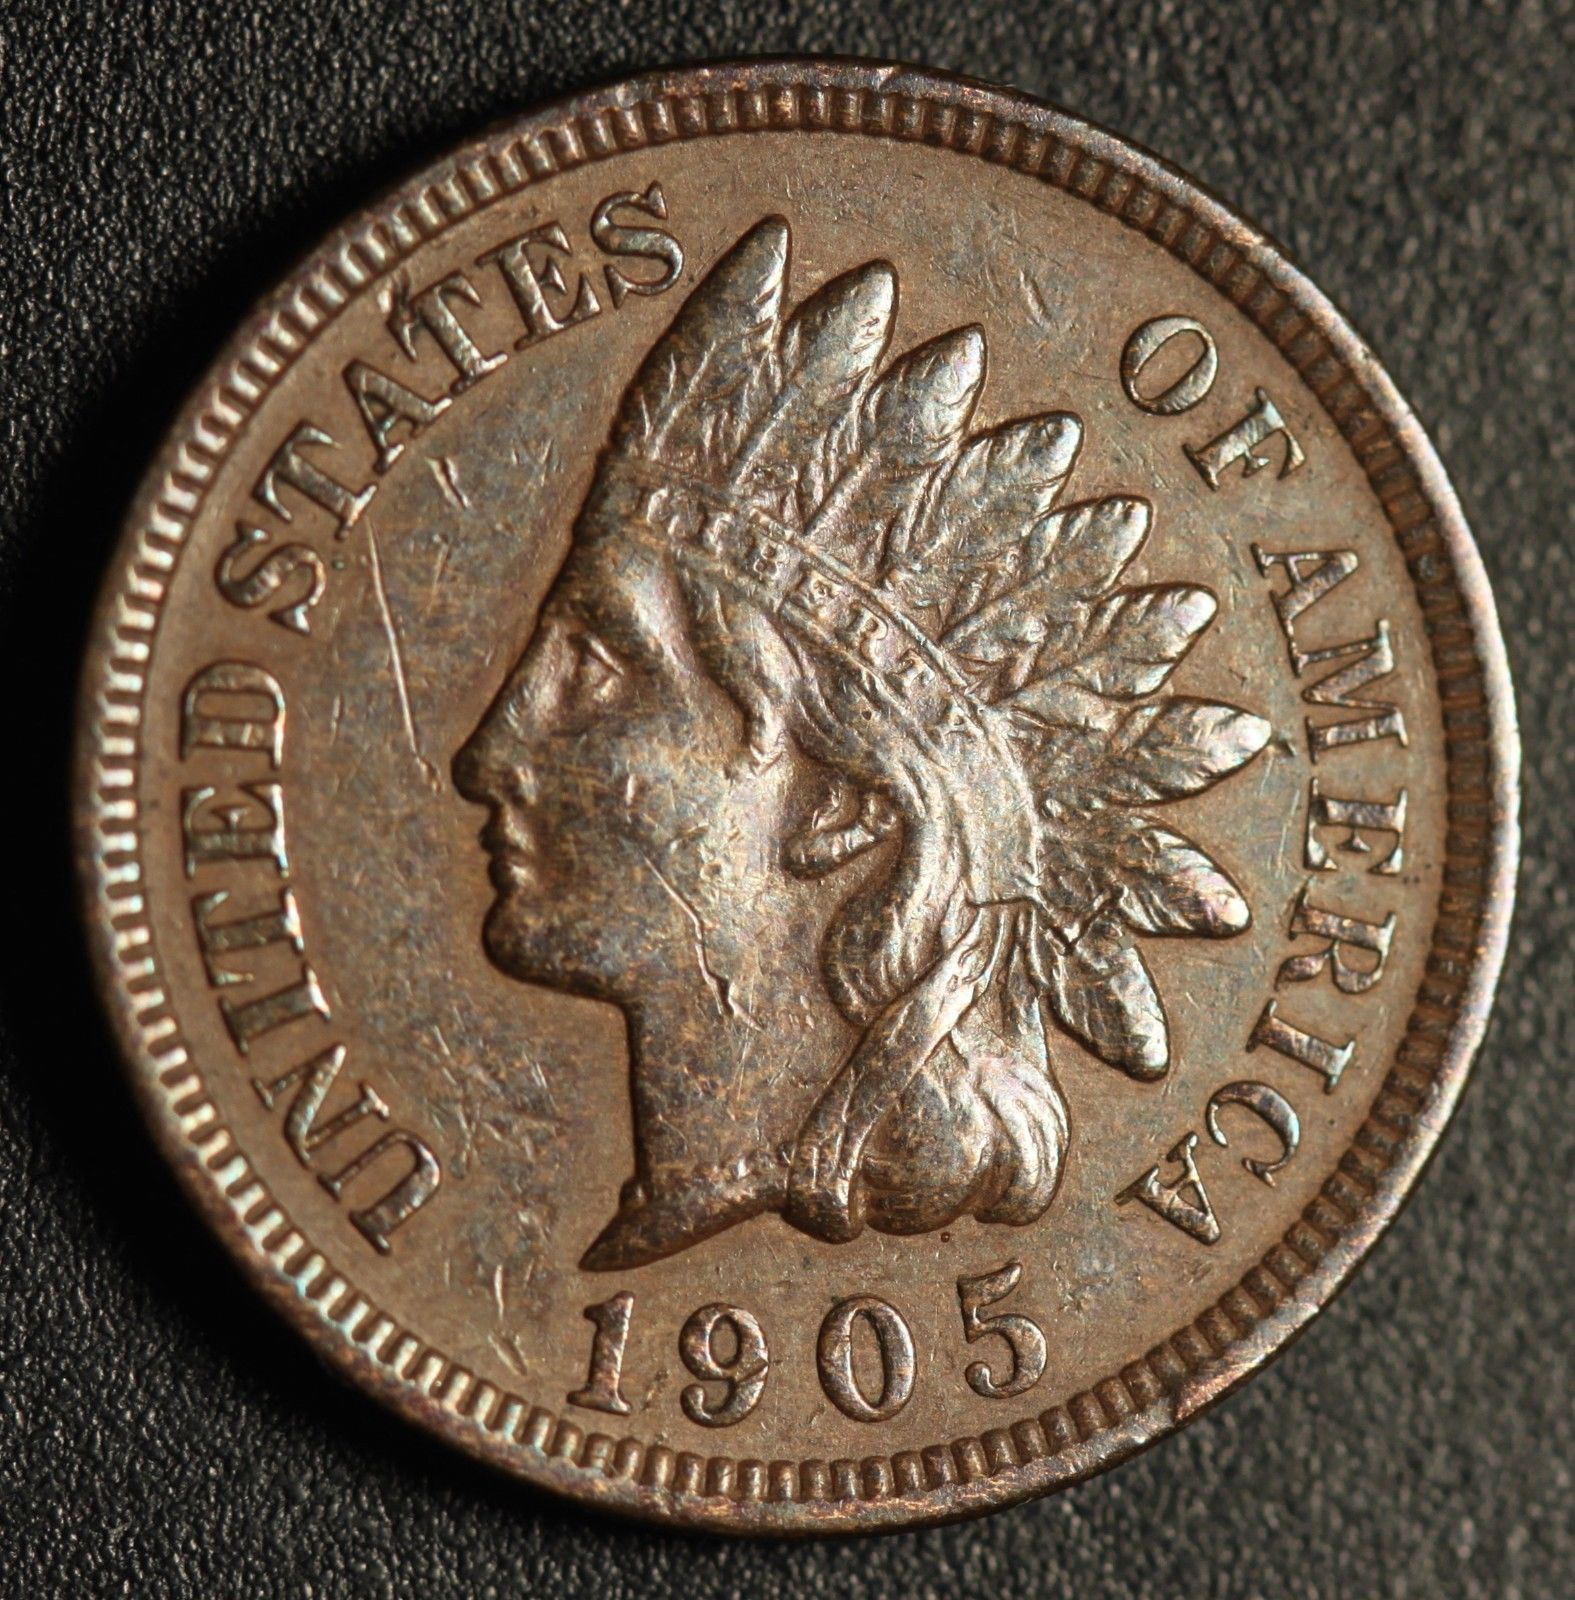 1905 RPD-029 - Indian Head Penny - Photo by Ed Nathanson